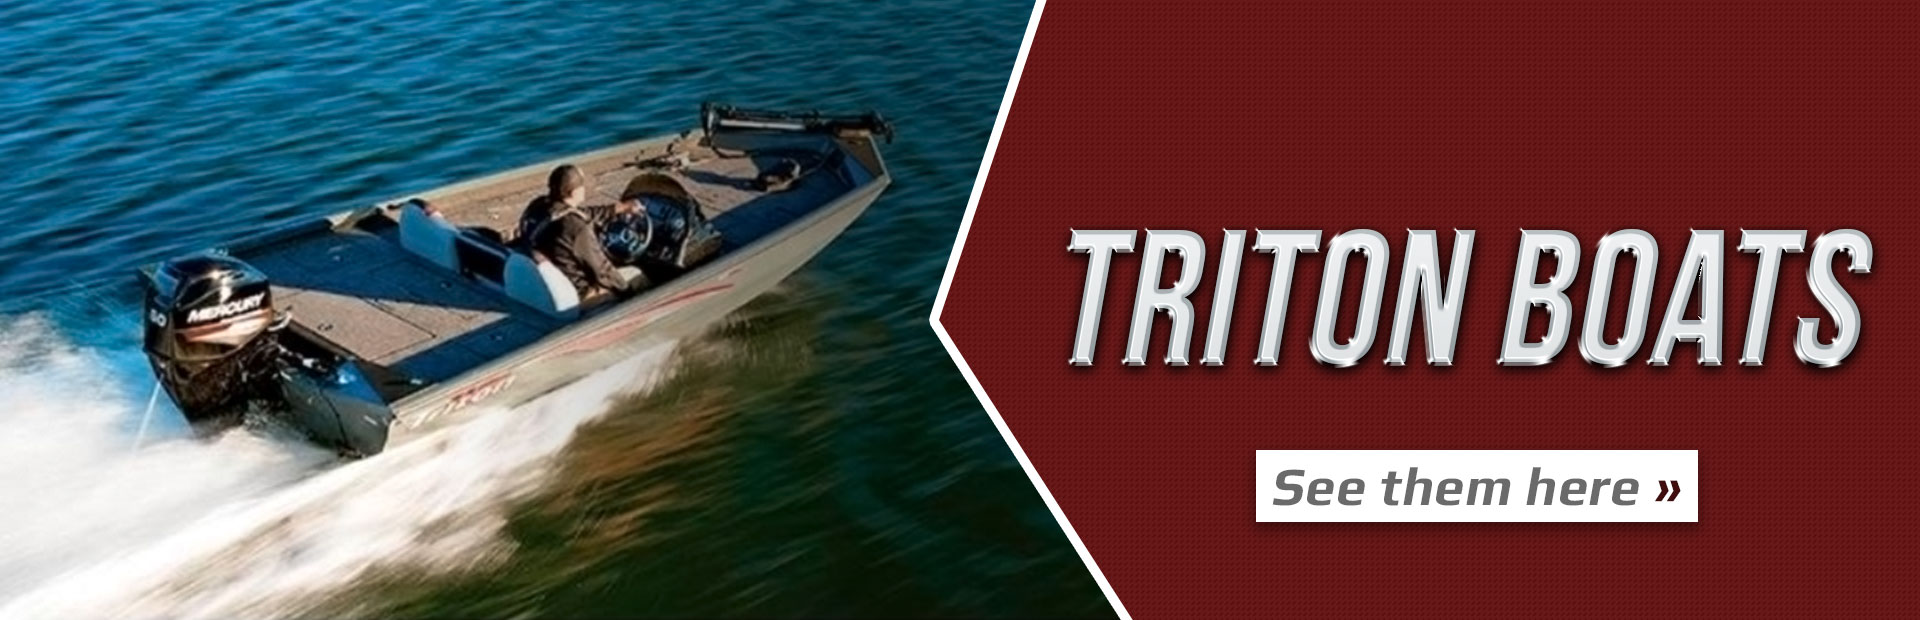 Triton Boats: Click here to see the models.